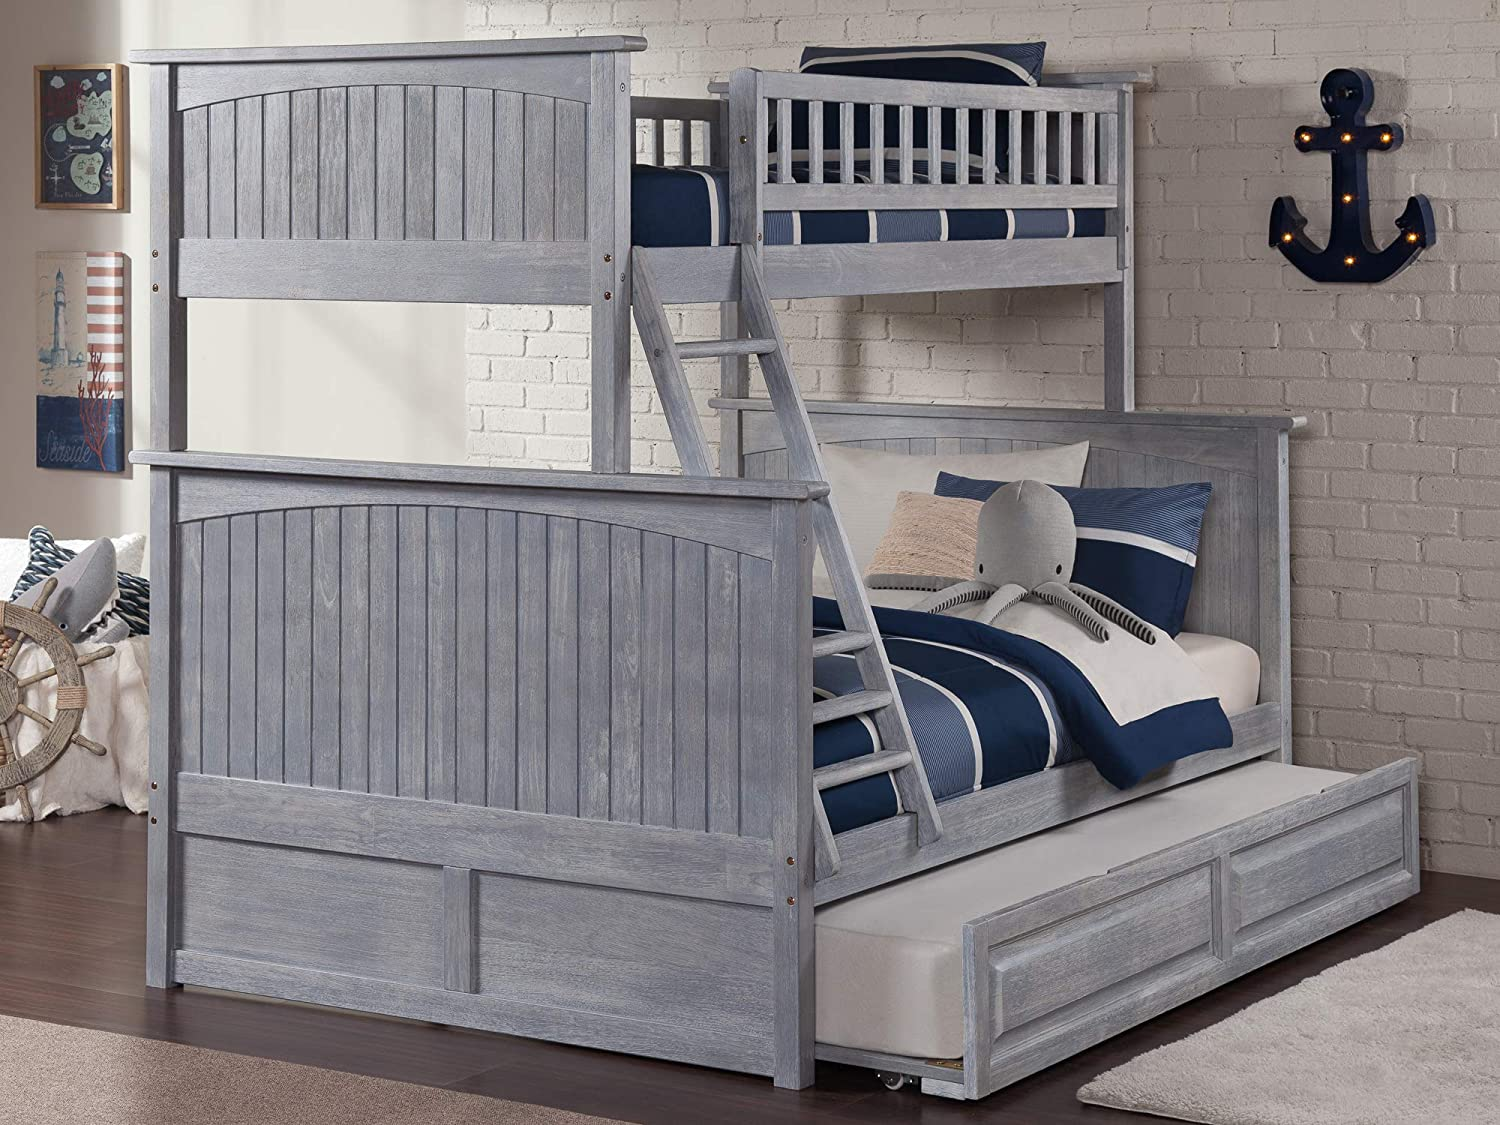 Atlantic Furniture AB59238 Nantucket Bunk Bed with Twin Size Raised Panel Trundle, Twin Full, Driftwood